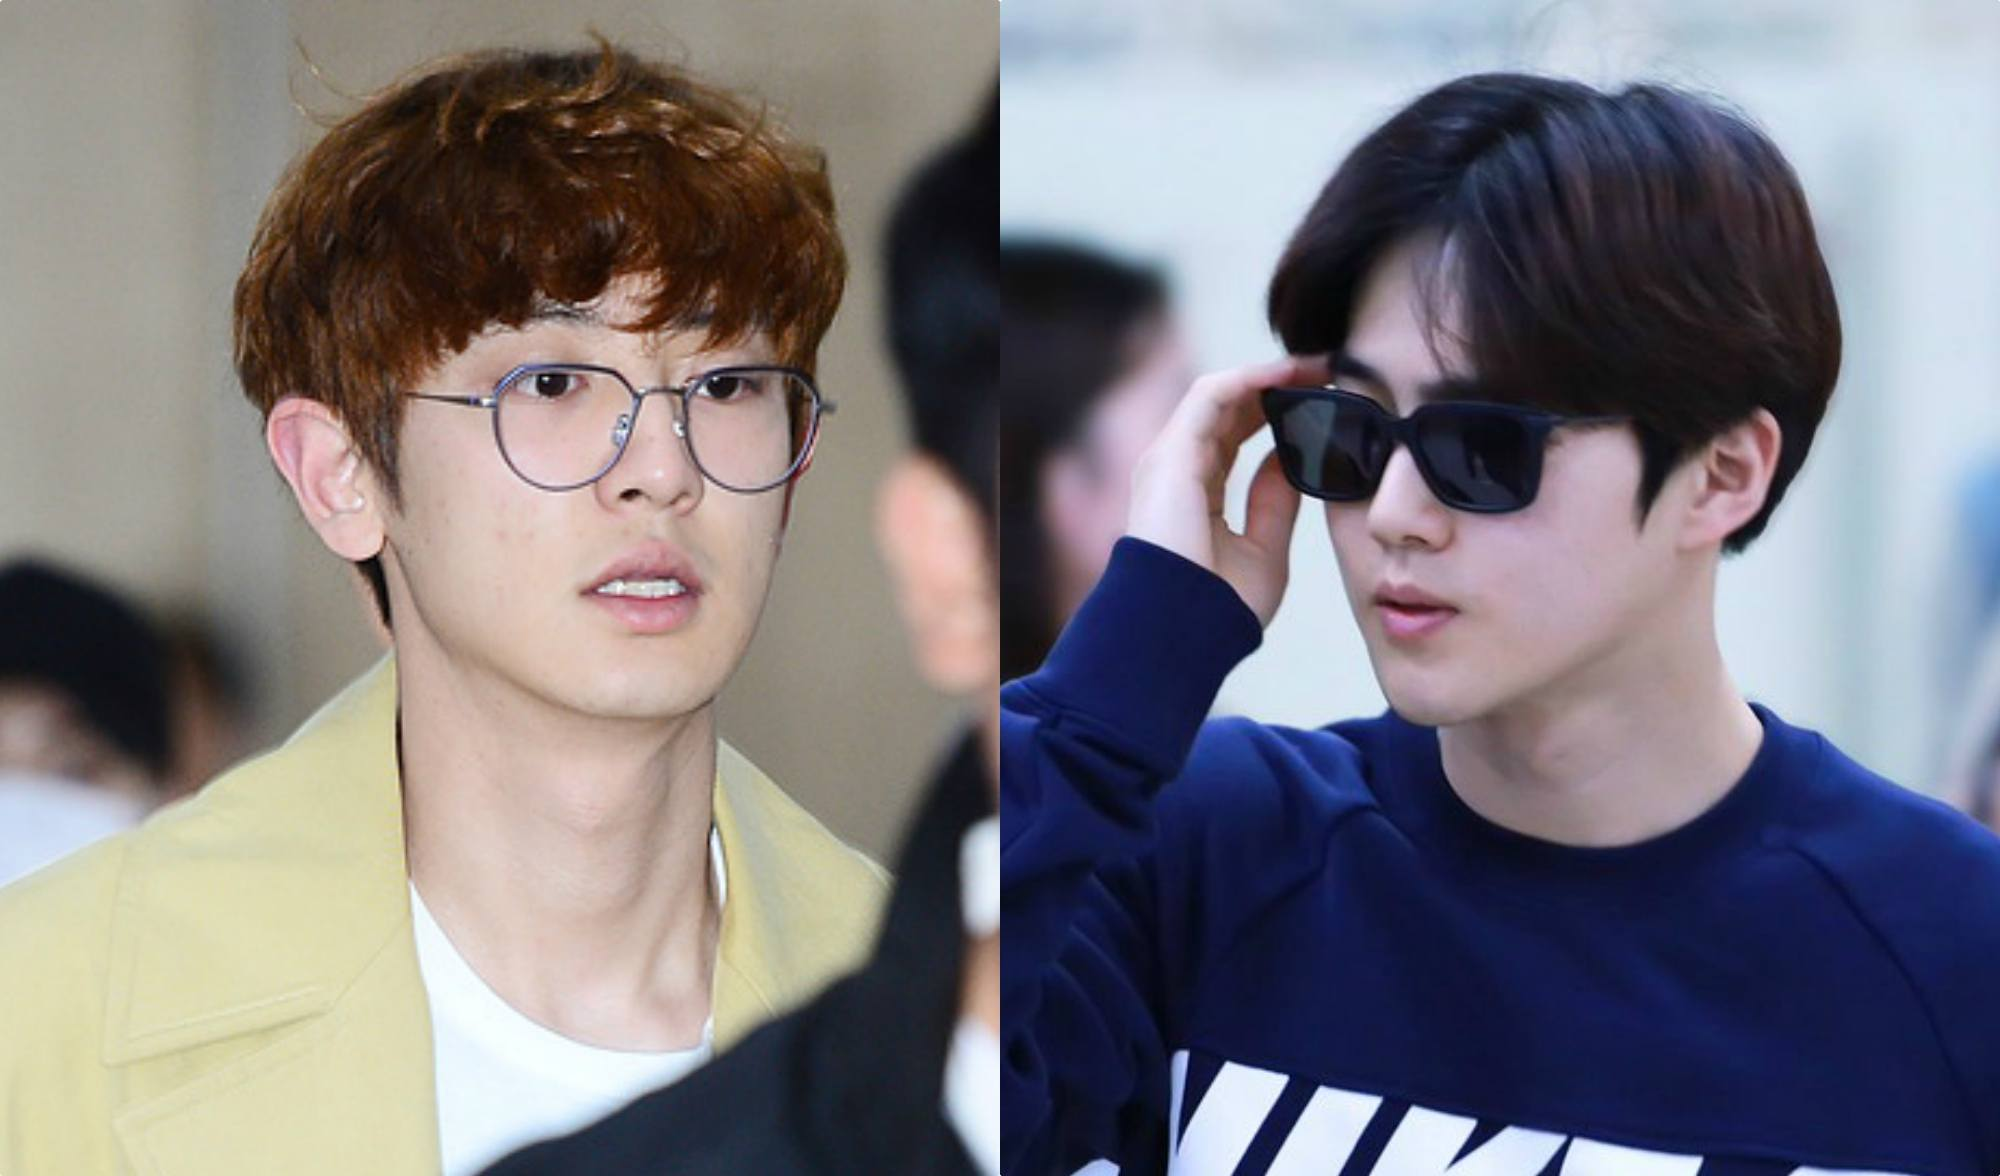 EXOs Suho and Chanyeol at the airport without makeup